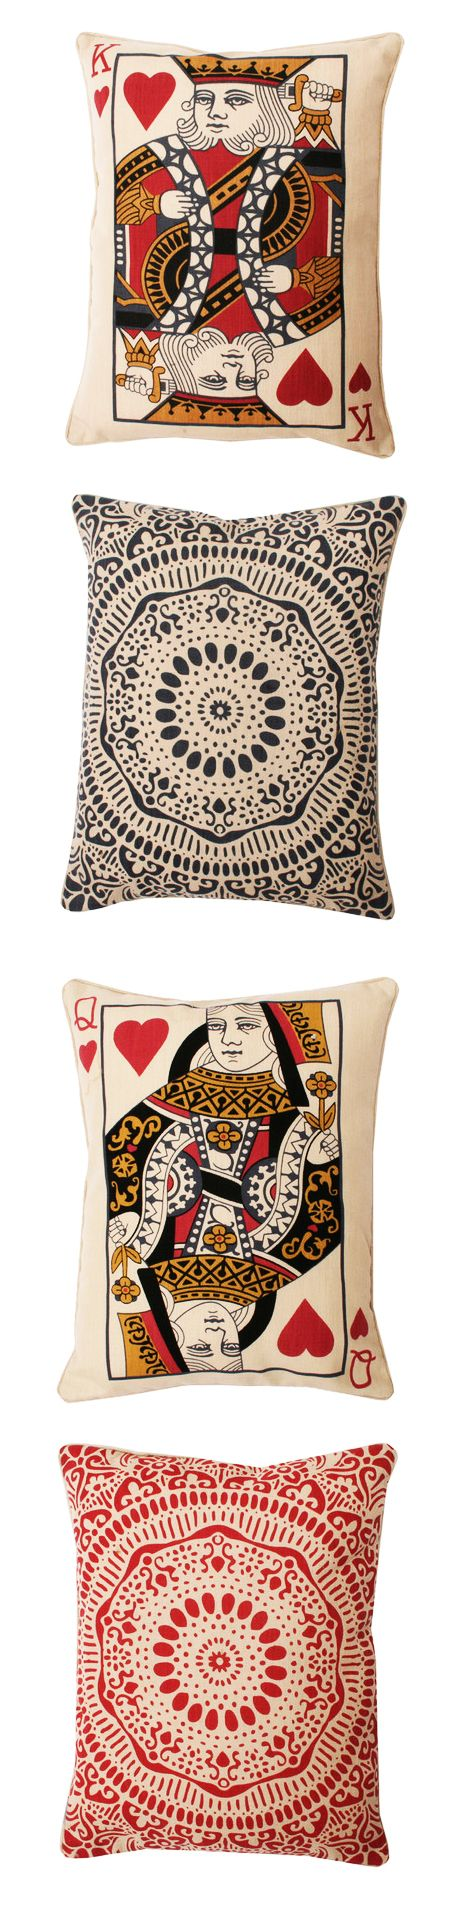 King and Queen of Hearts card pillows // awesome idea for the master bedroom